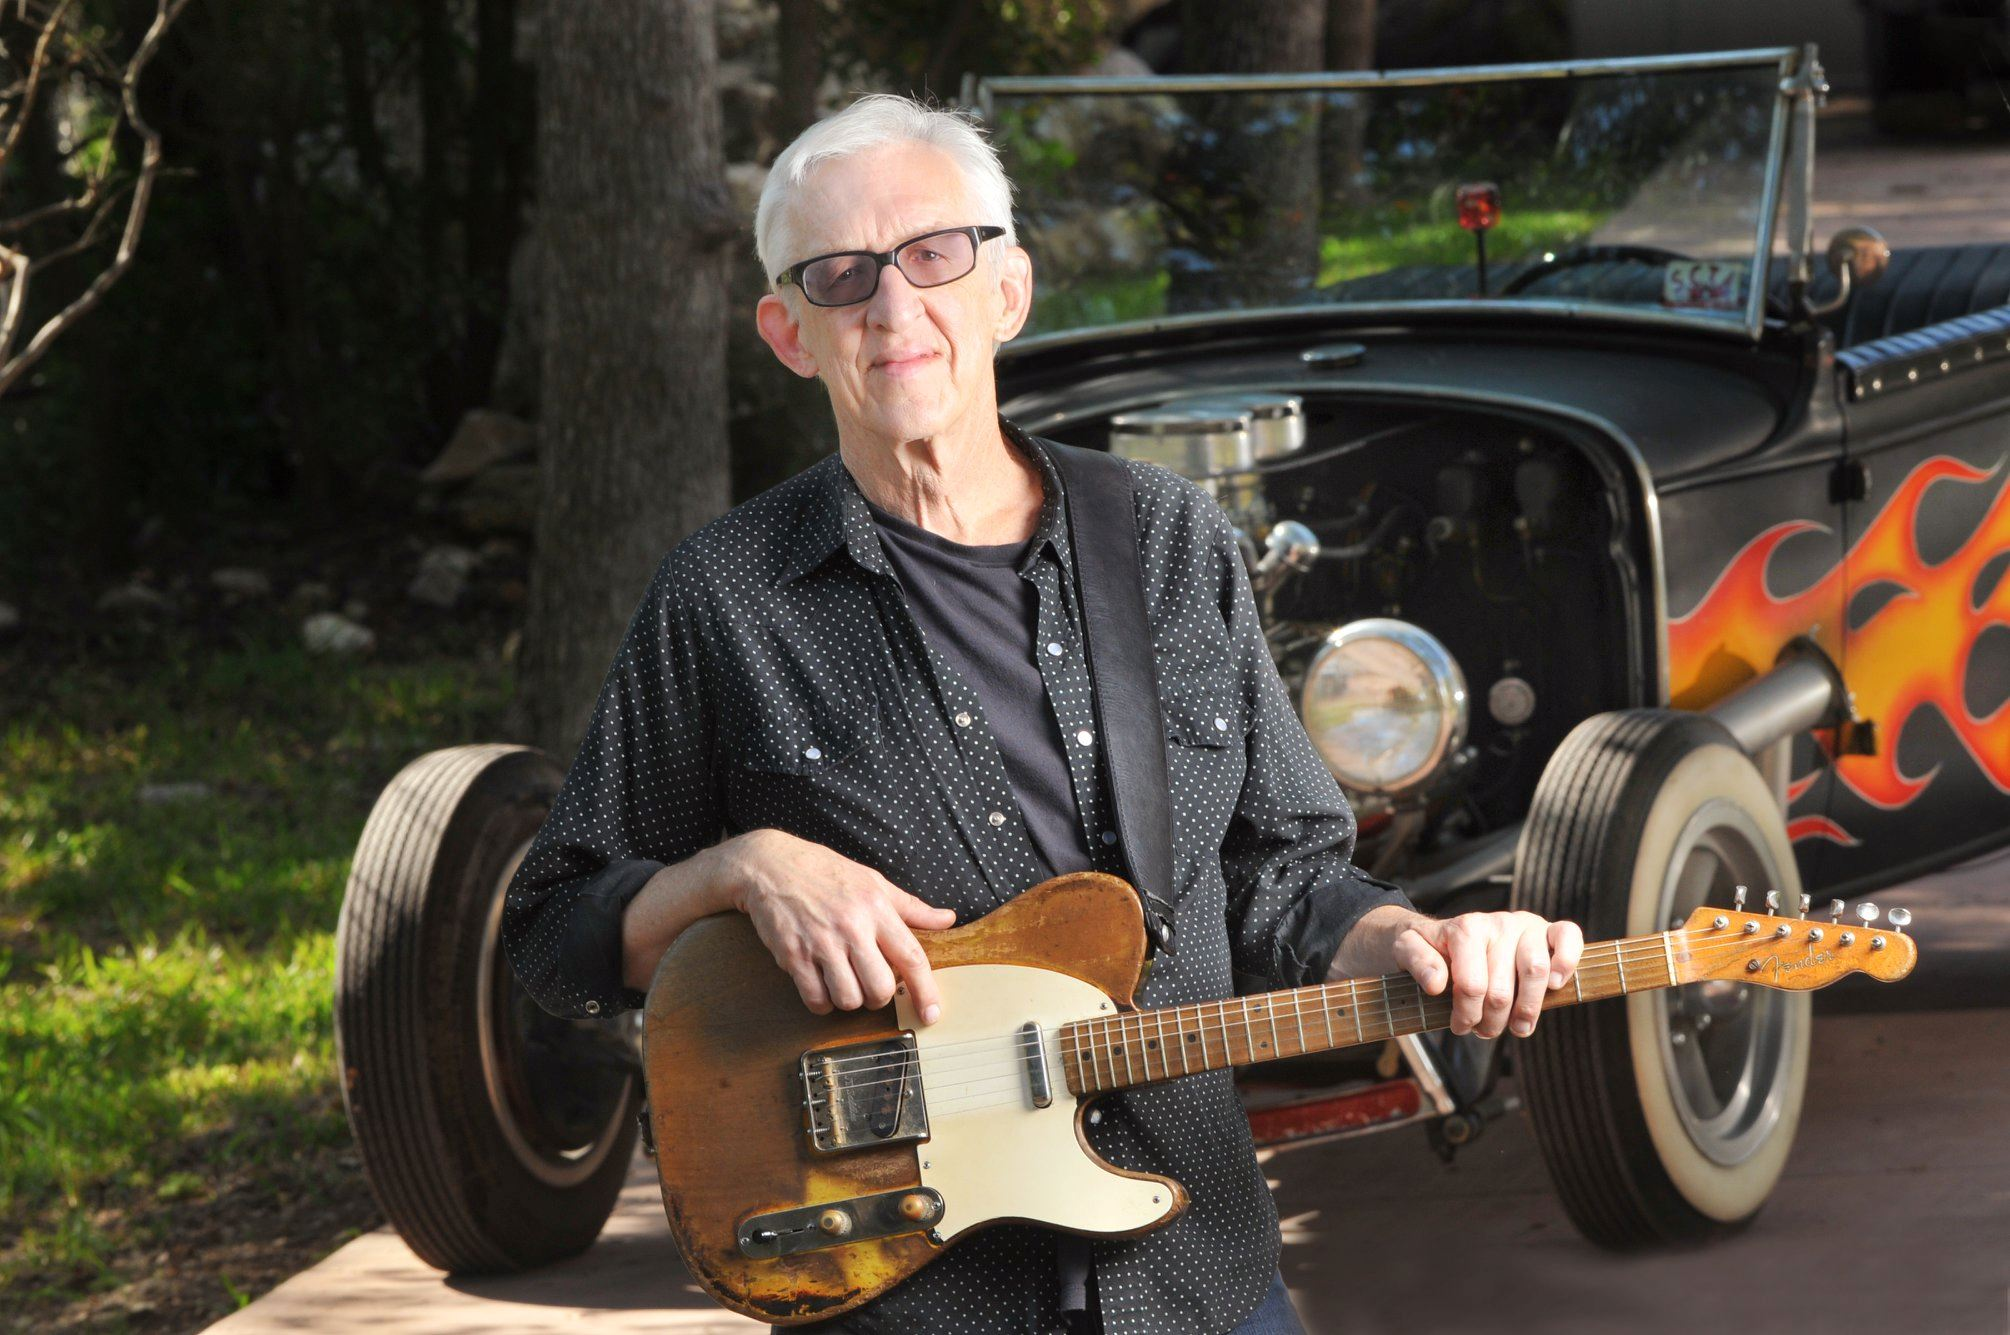 Austin to Archbold Street Party with Bill Kirchen, July 26th from 7 PM to 10 PM, Downtown Archbold.